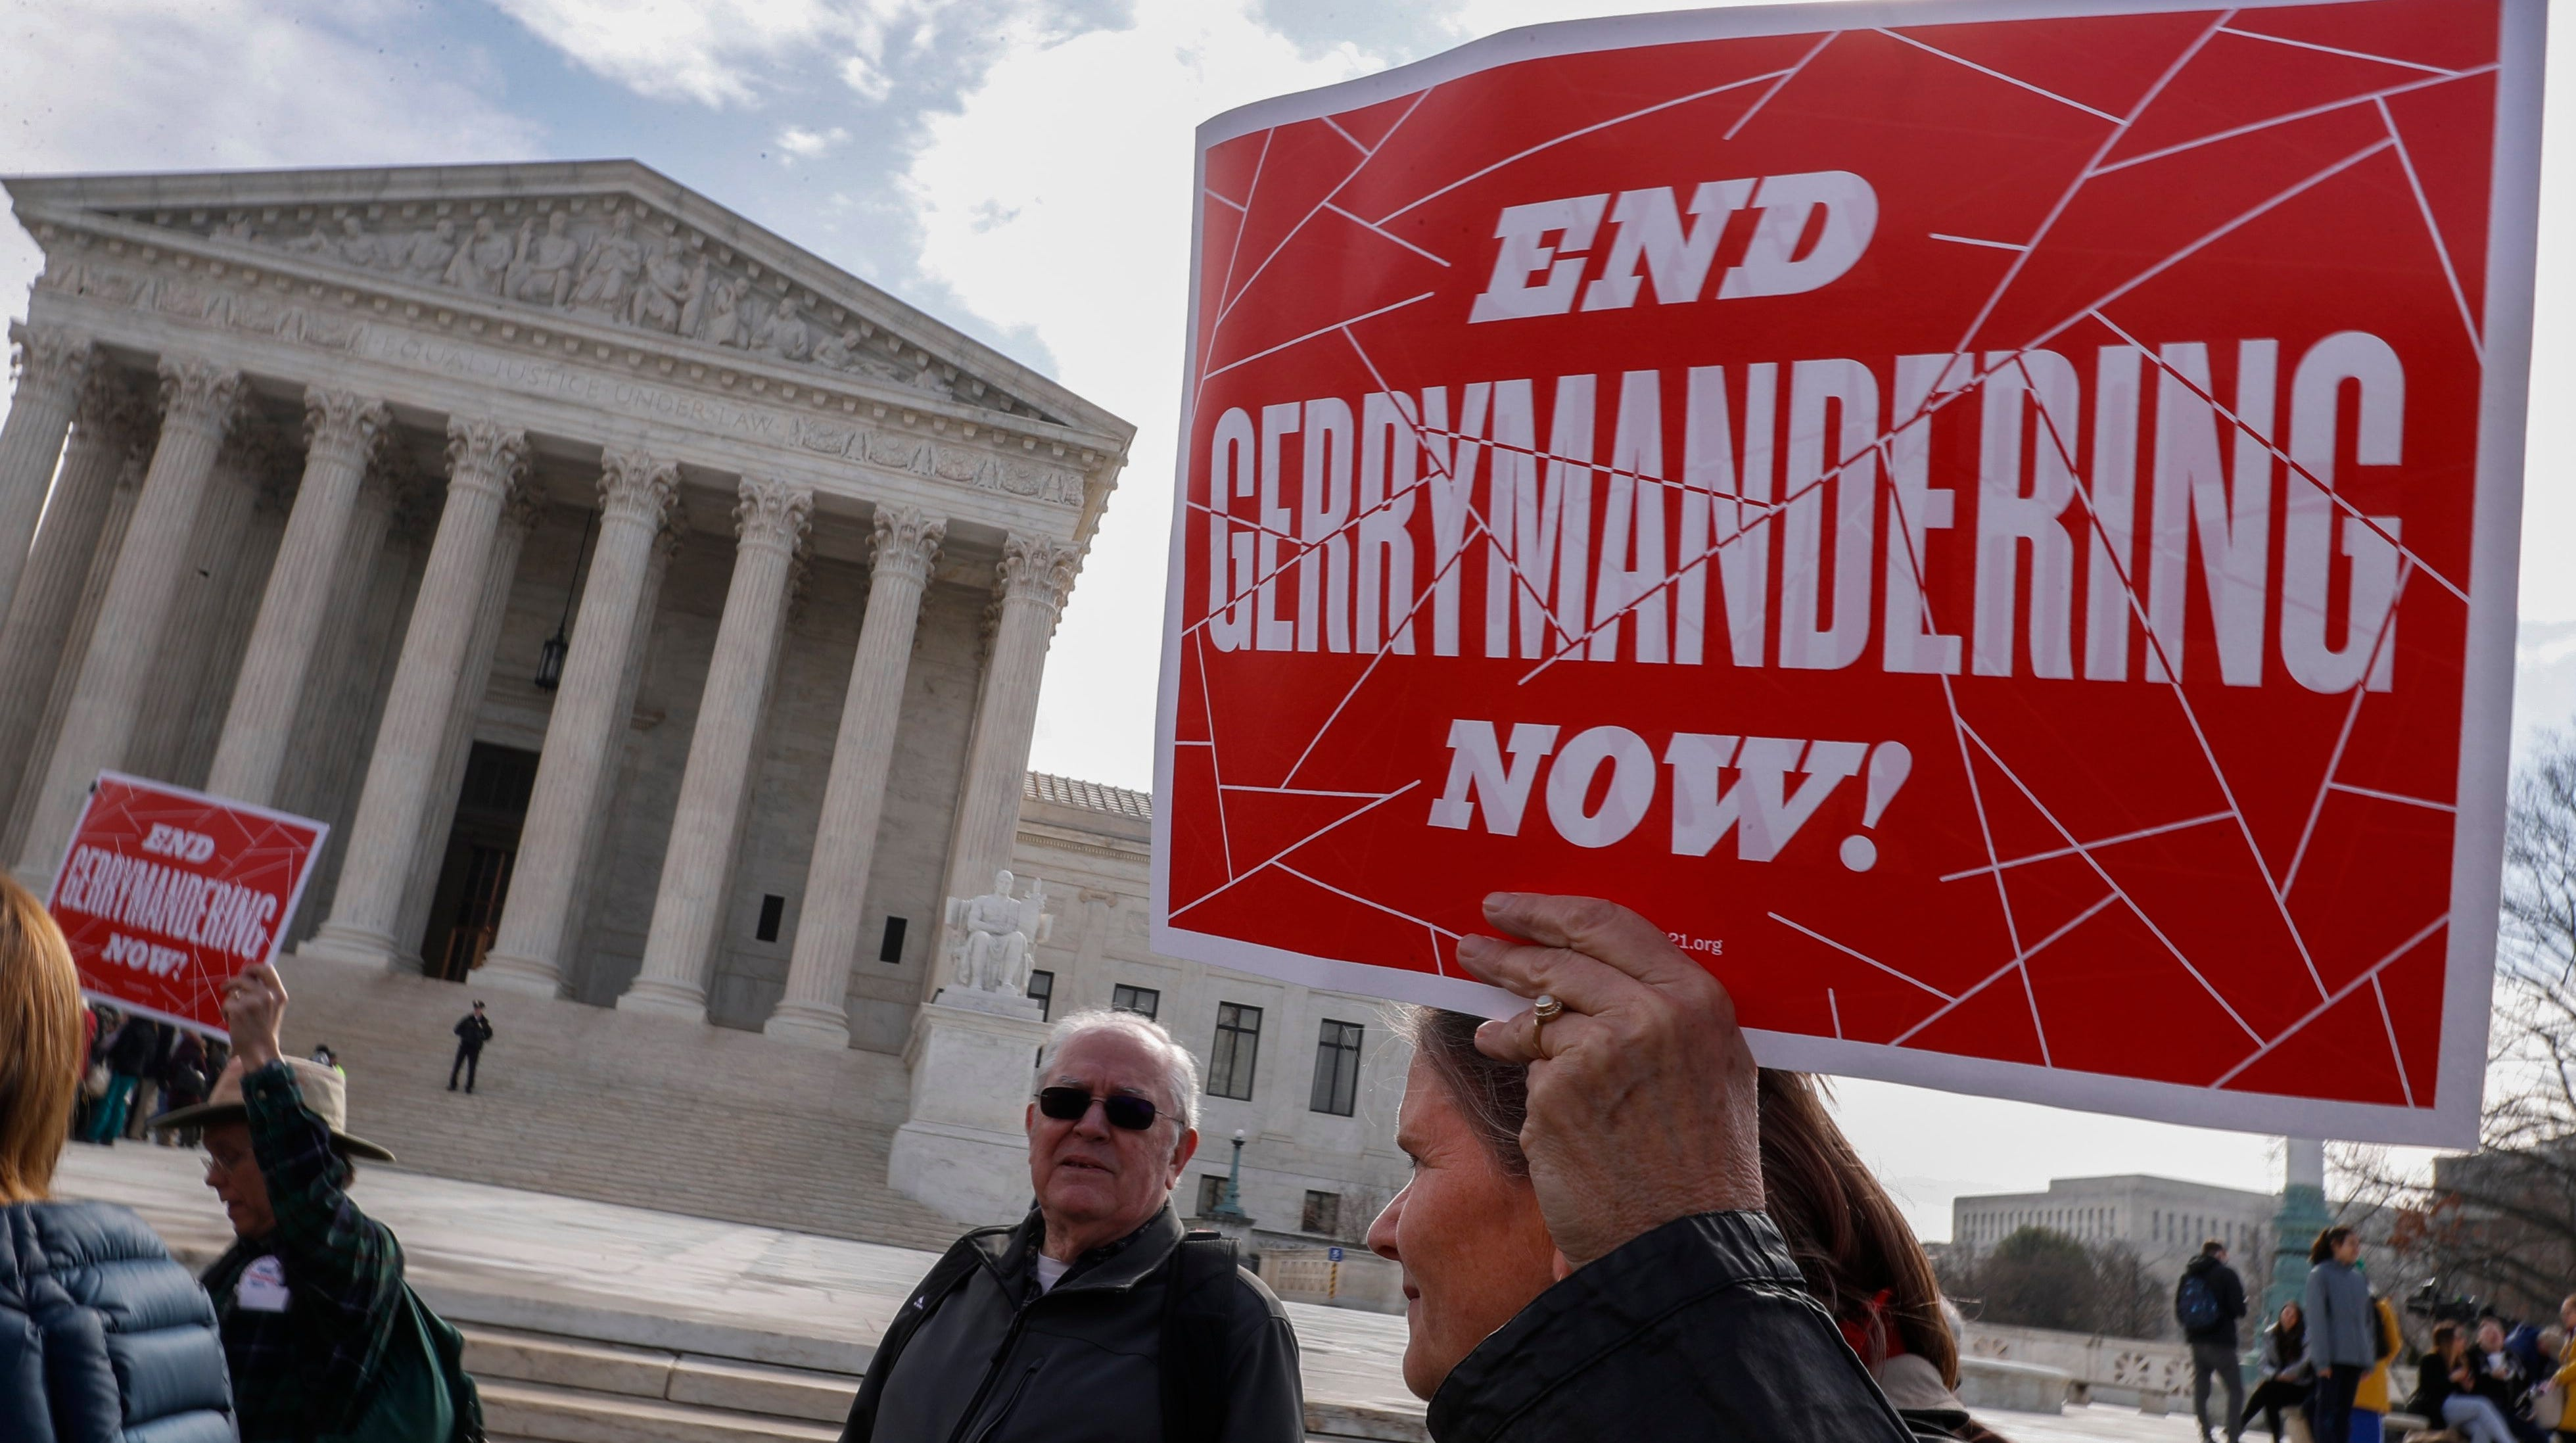 Protesters rally outside the Supreme Court as justices hear arguments in a Maryland gerrymandering case March 28.